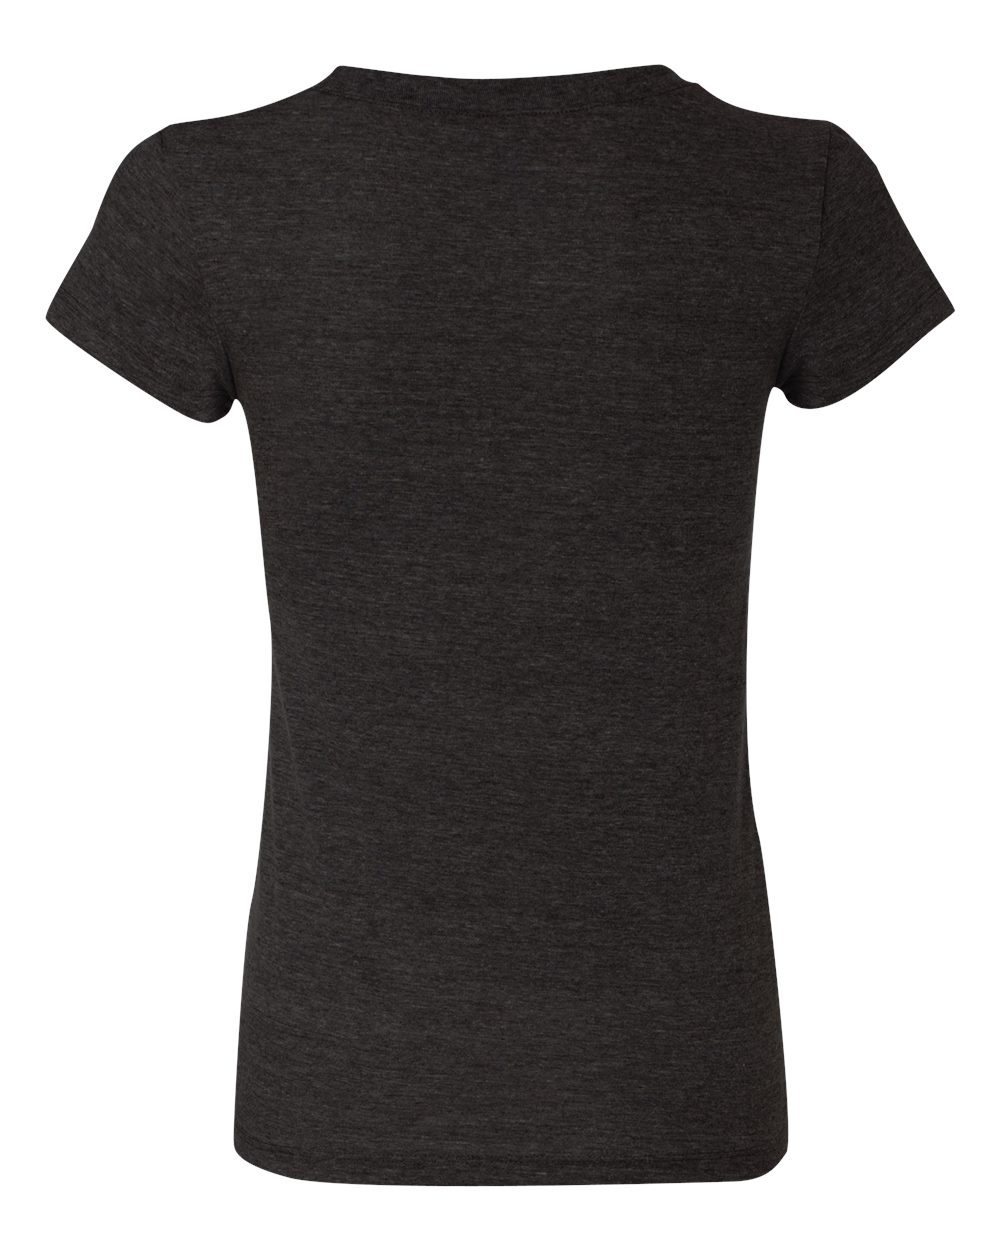 Bella-Canvas-Women-039-s-Triblend-Short-Sleeve-T-Shirt-B8413-S-2XL thumbnail 43